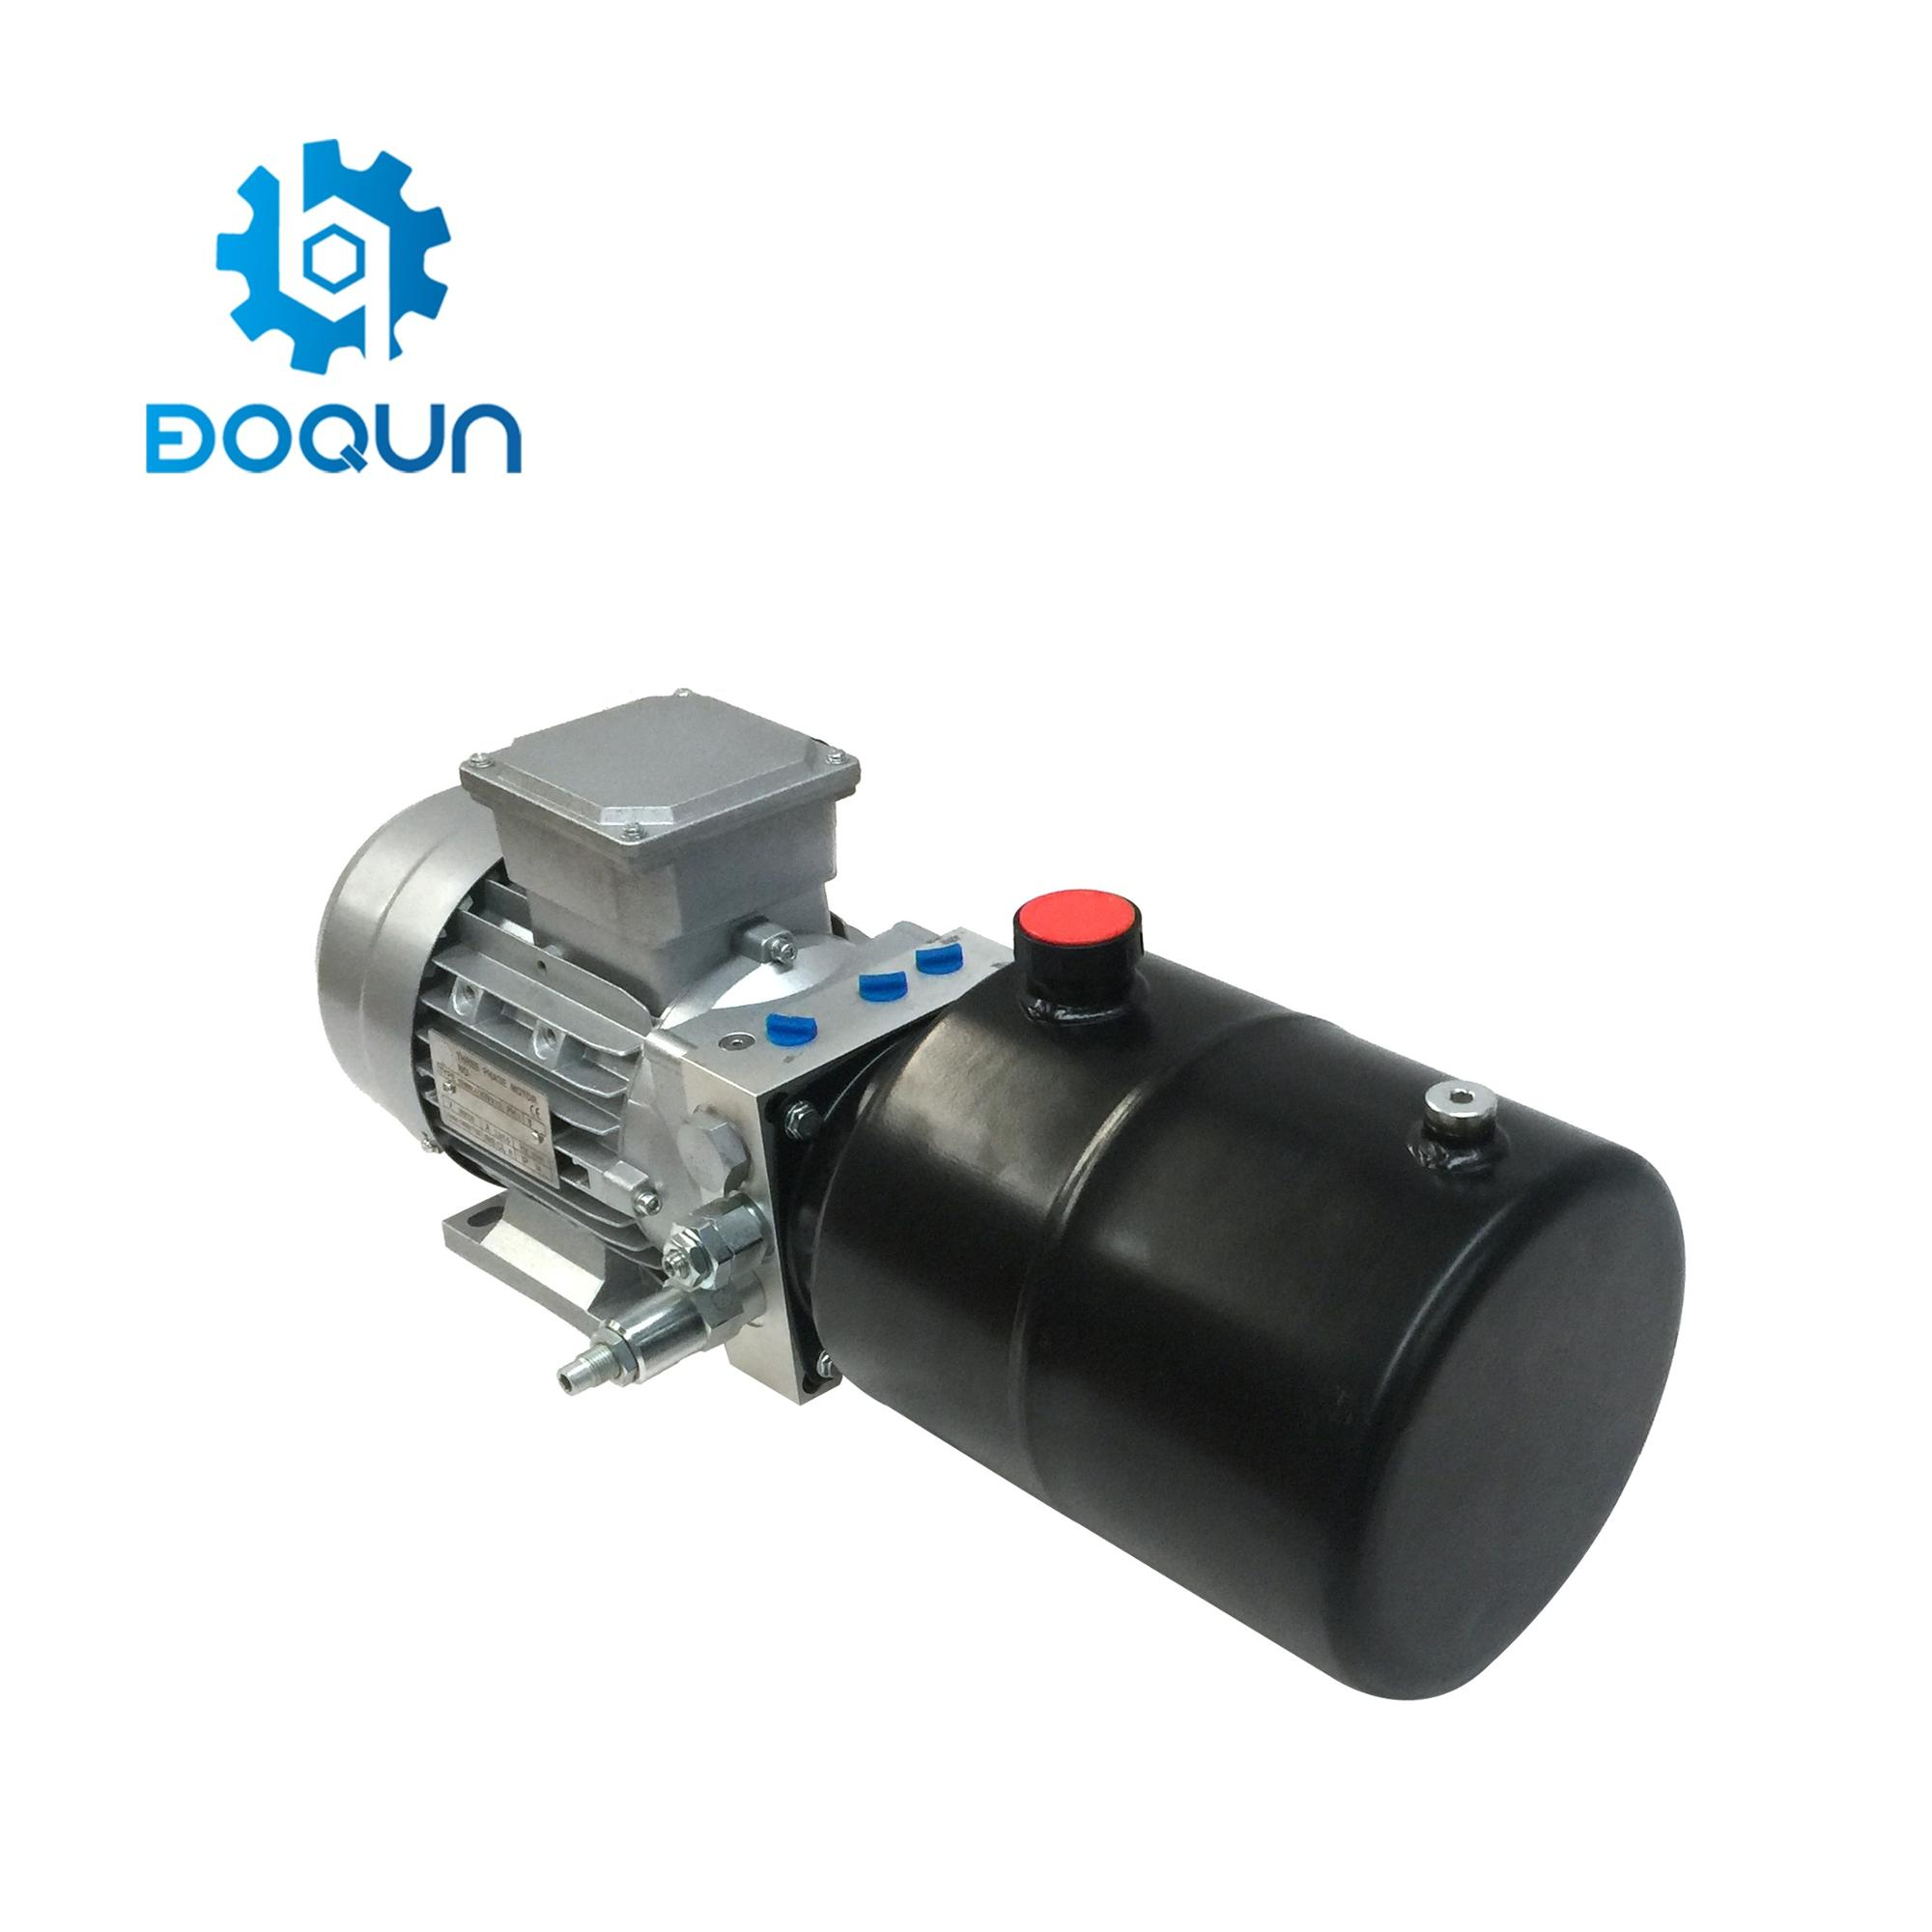 DD01B China Direct Supply 5L Mini Dubbelwerkend AC380V 3 Fase Motor Micro Elektrische Dock Niveau Hydraulische Power Pack Eenheden